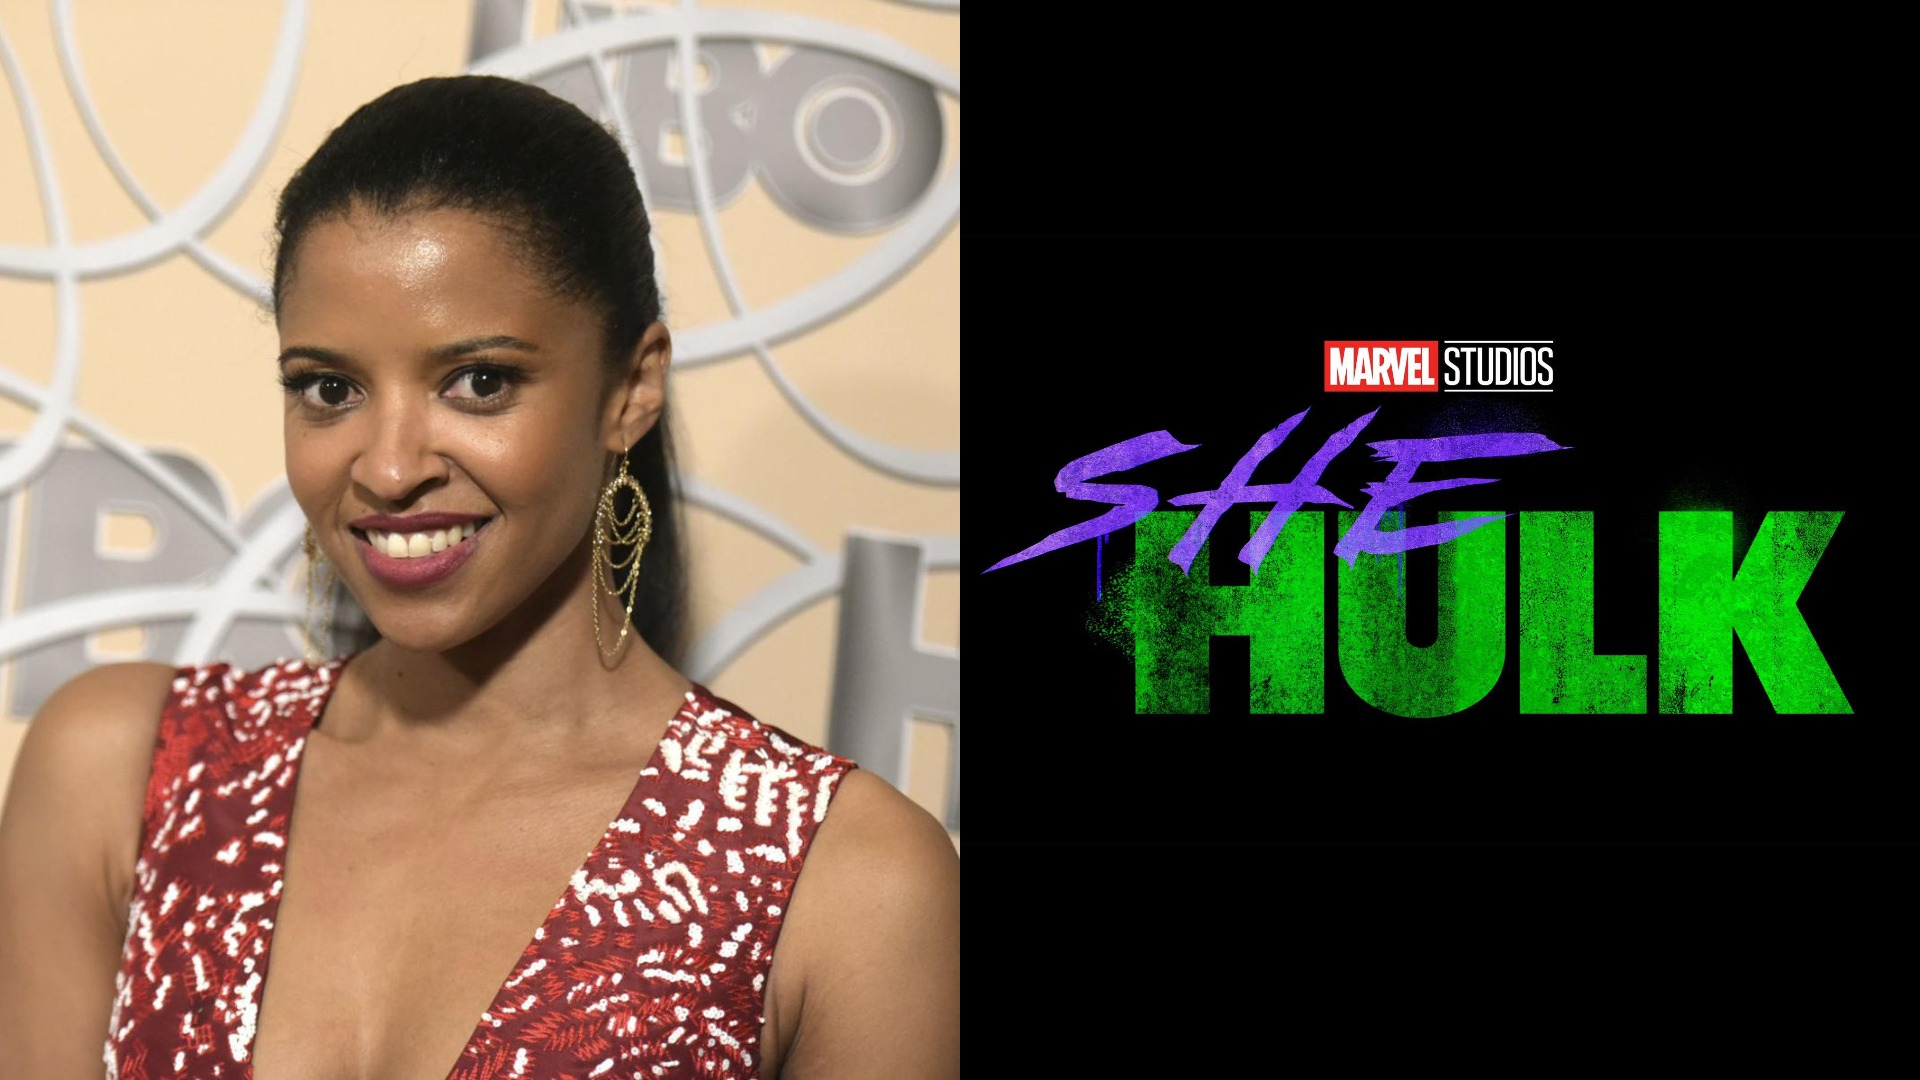 Deadline is exclusively reporting that Renée Elise Goldsberry is the latest name to the join the cast of the upcoming Marvel Studios series She-Hulk at Disney+.